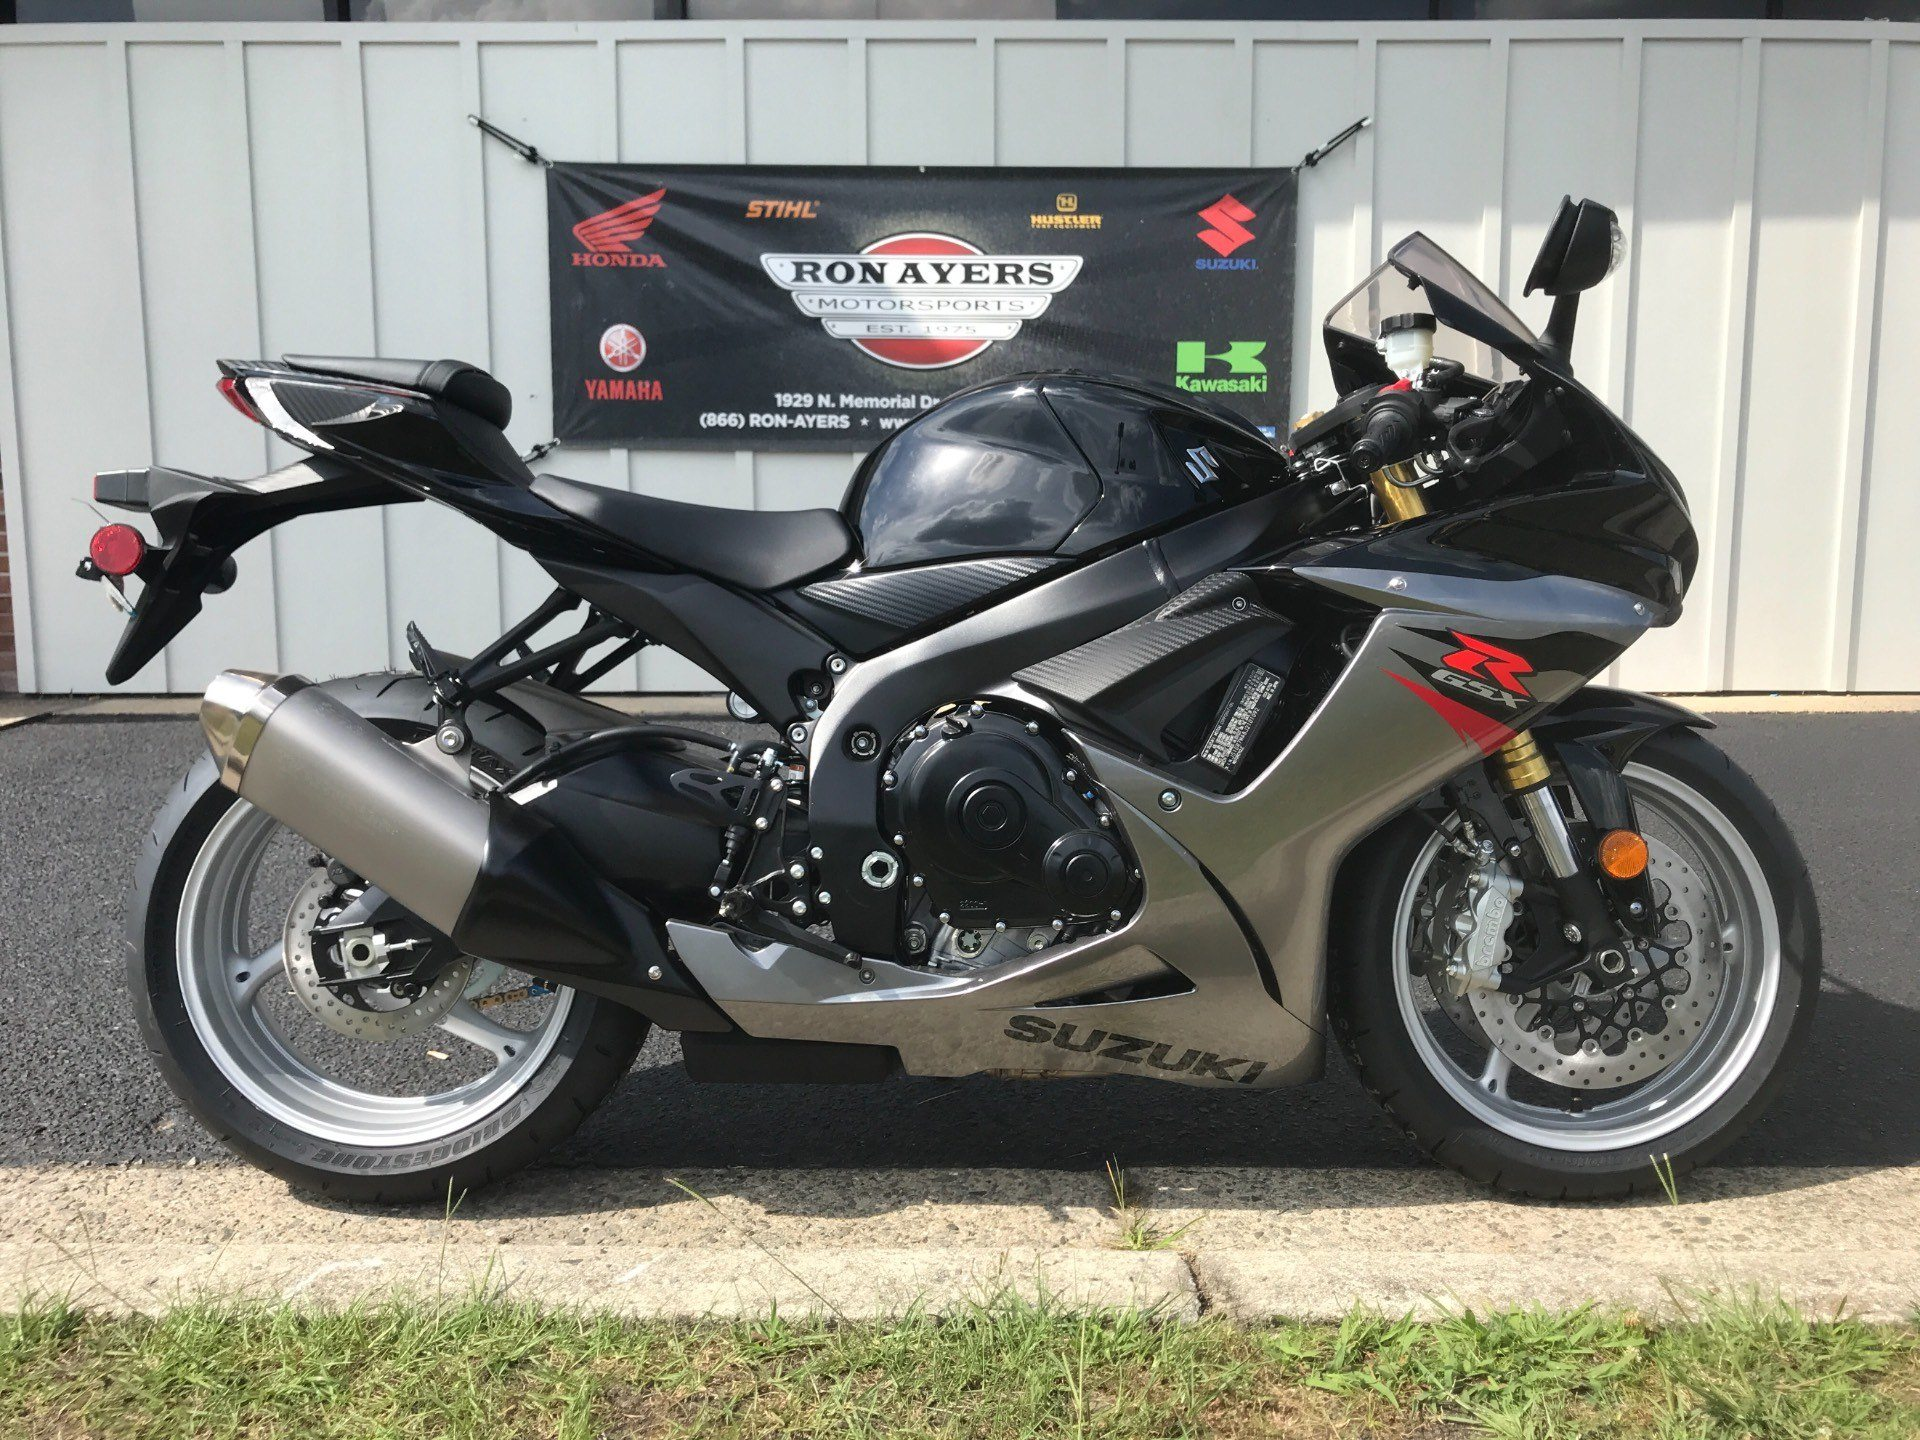 2018 Suzuki GSX-R750 in Greenville, North Carolina - Photo 1